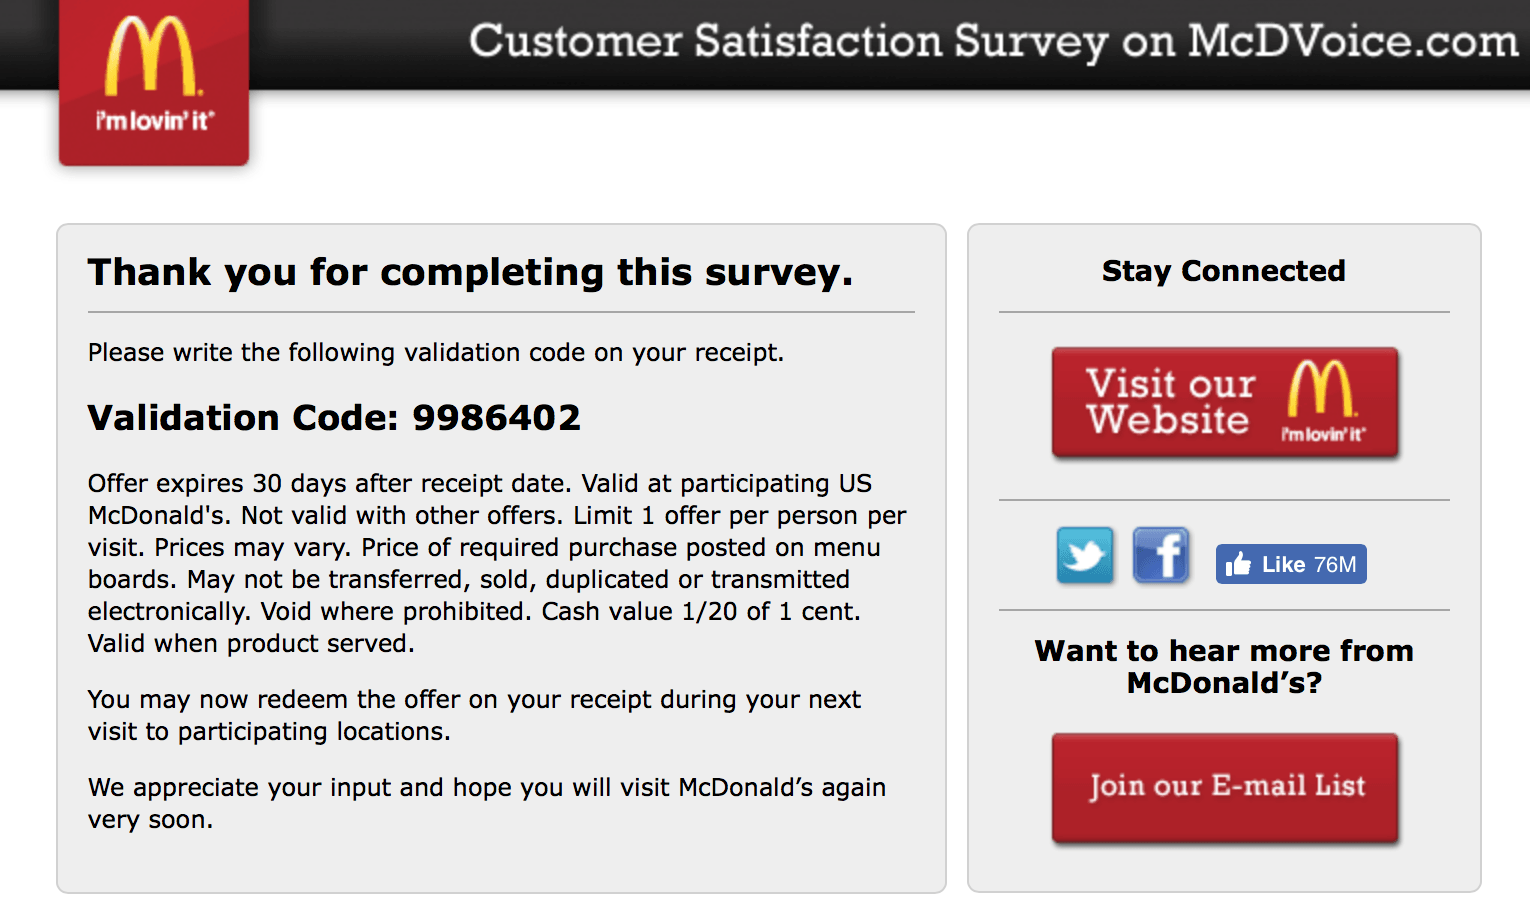 McDVOICE: How To Finish The Mcdonald's Customer Satisfaction Survey?